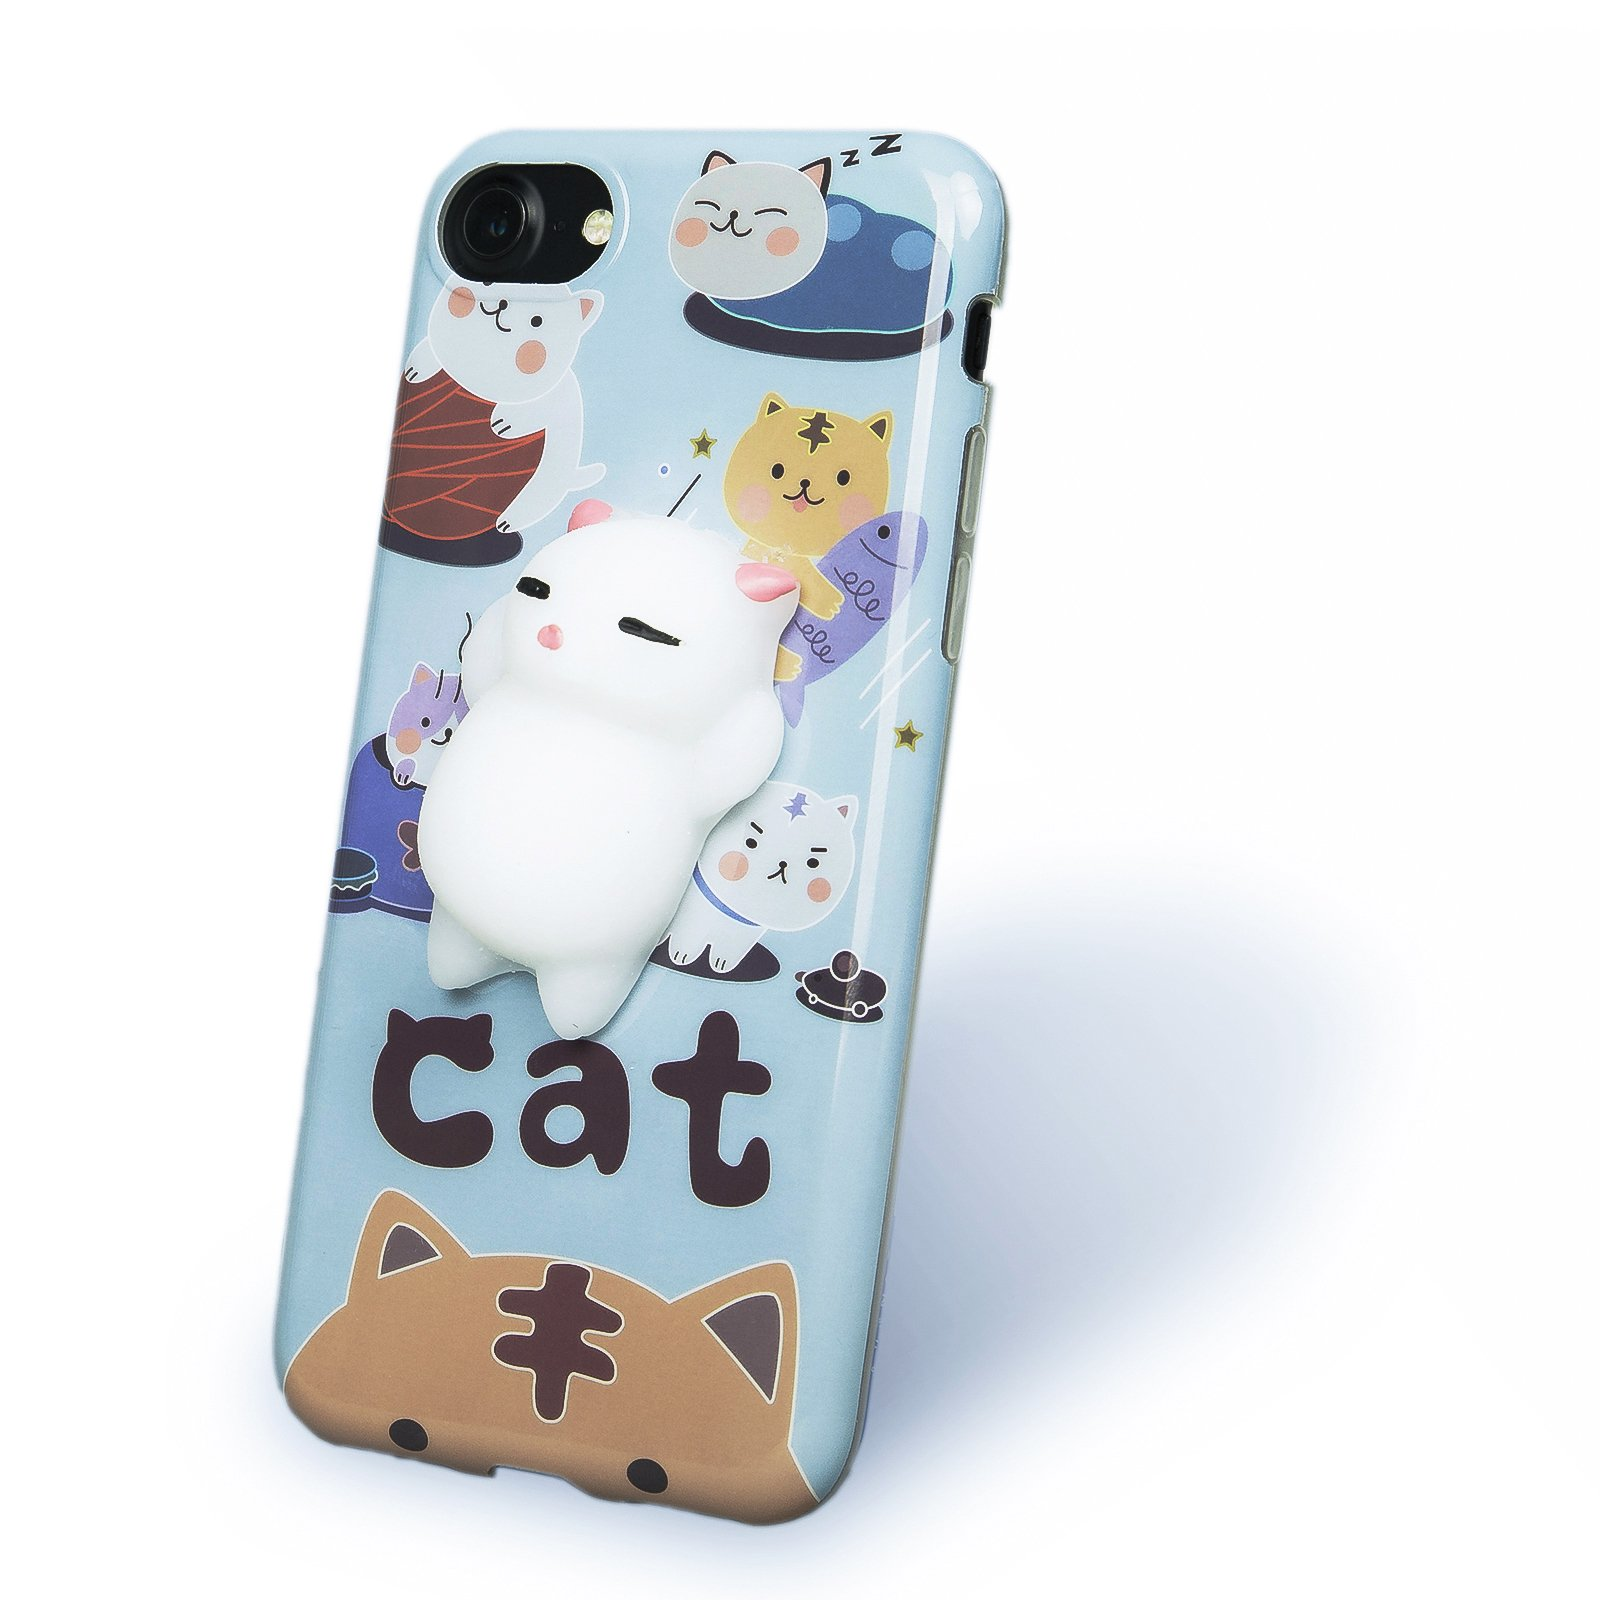 online retailer c50bc ad295 Details about Squishy Cat Phone Case iPhone 73D Cute Soft Silicone Poke  Squishy Cat Phone B...